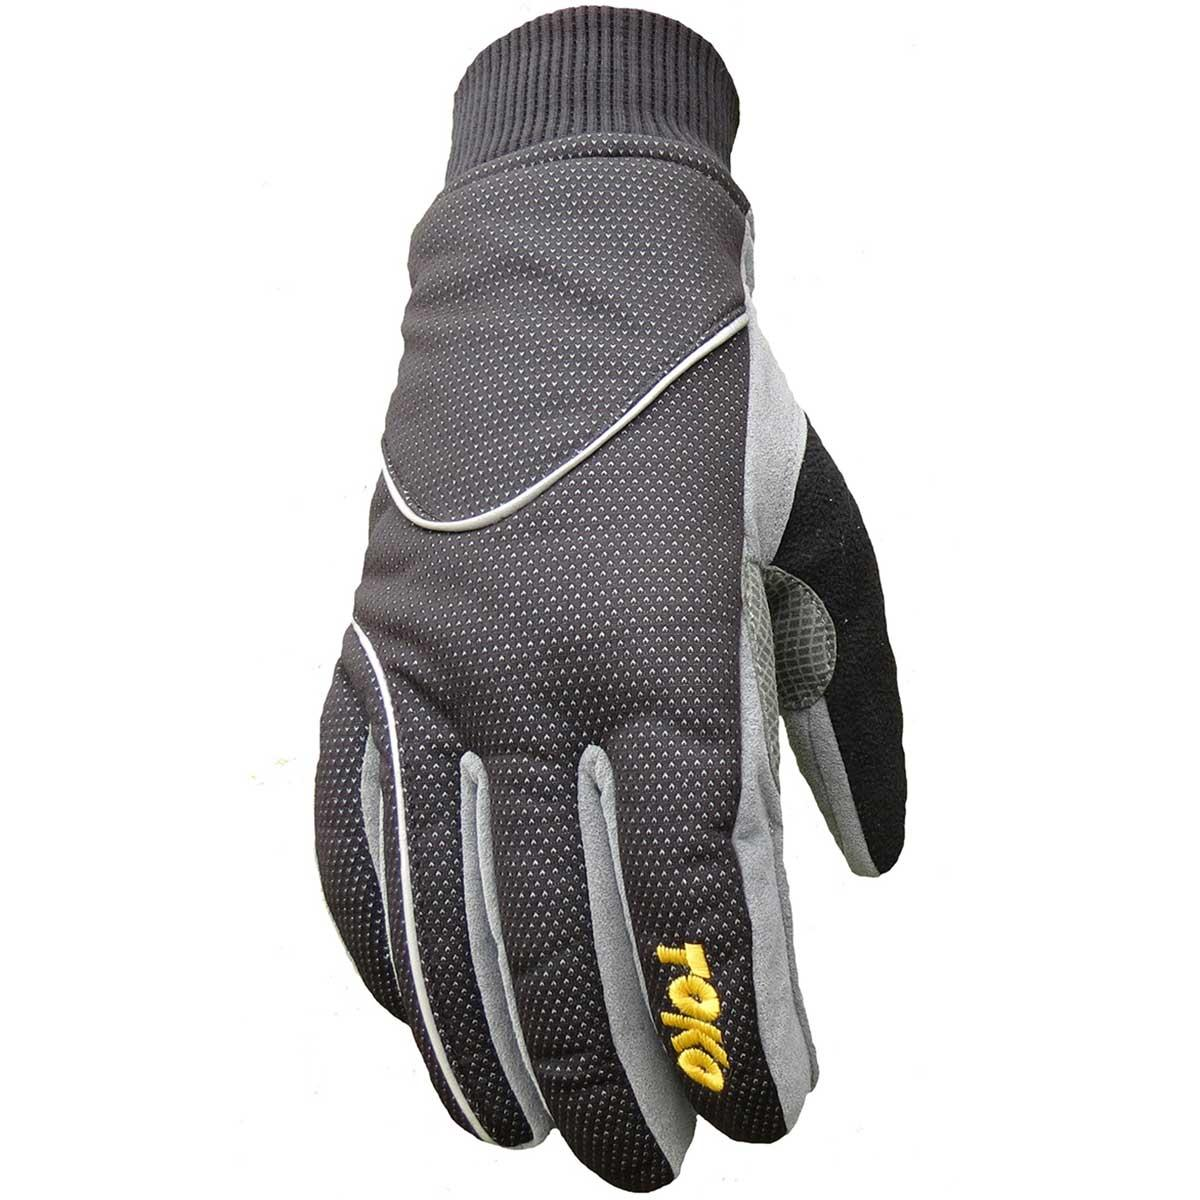 Toko Arctic Gloves in Black